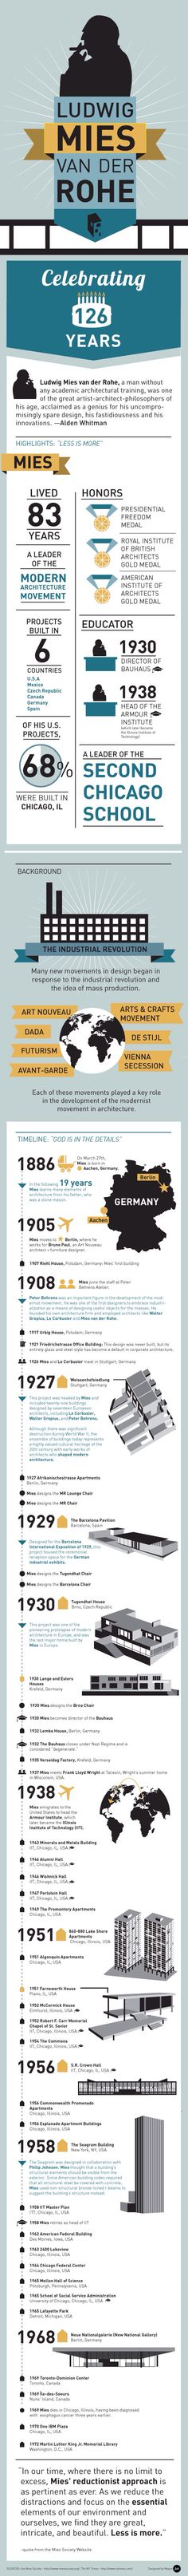 Archdaily Infographic: Celebrating Mies van der Rohe